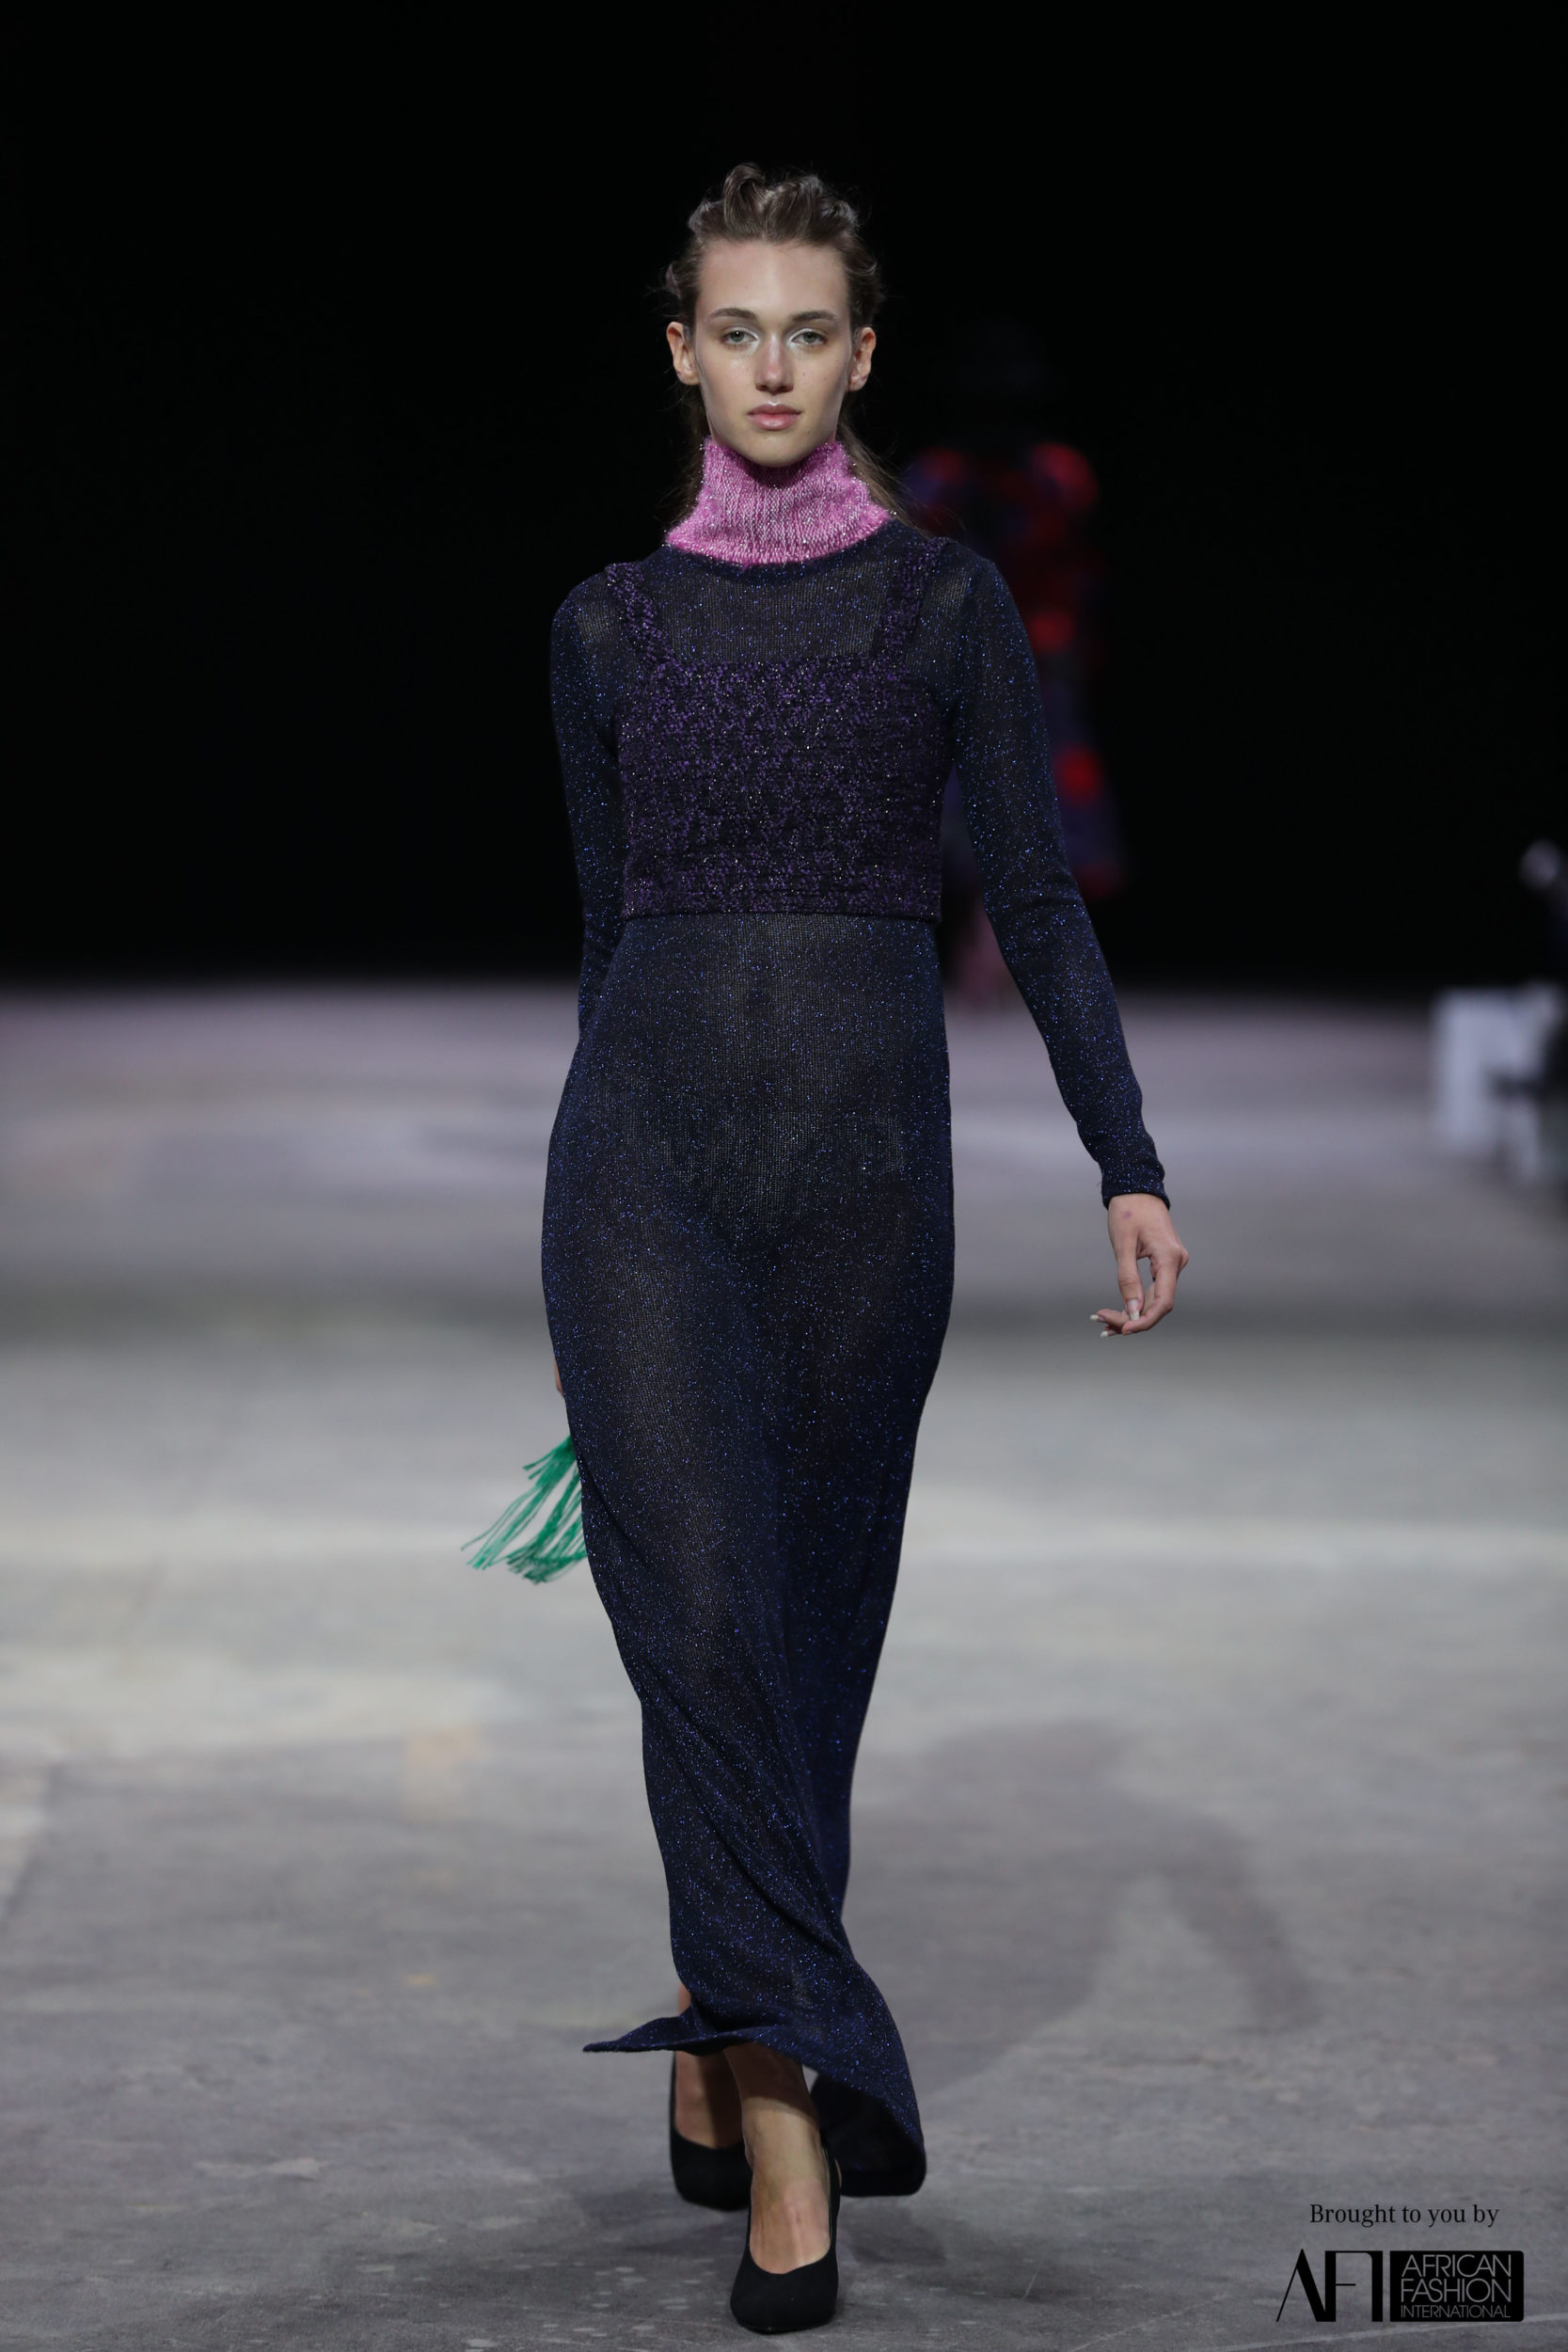 #AFICTFW18 | Nicolas Coutts